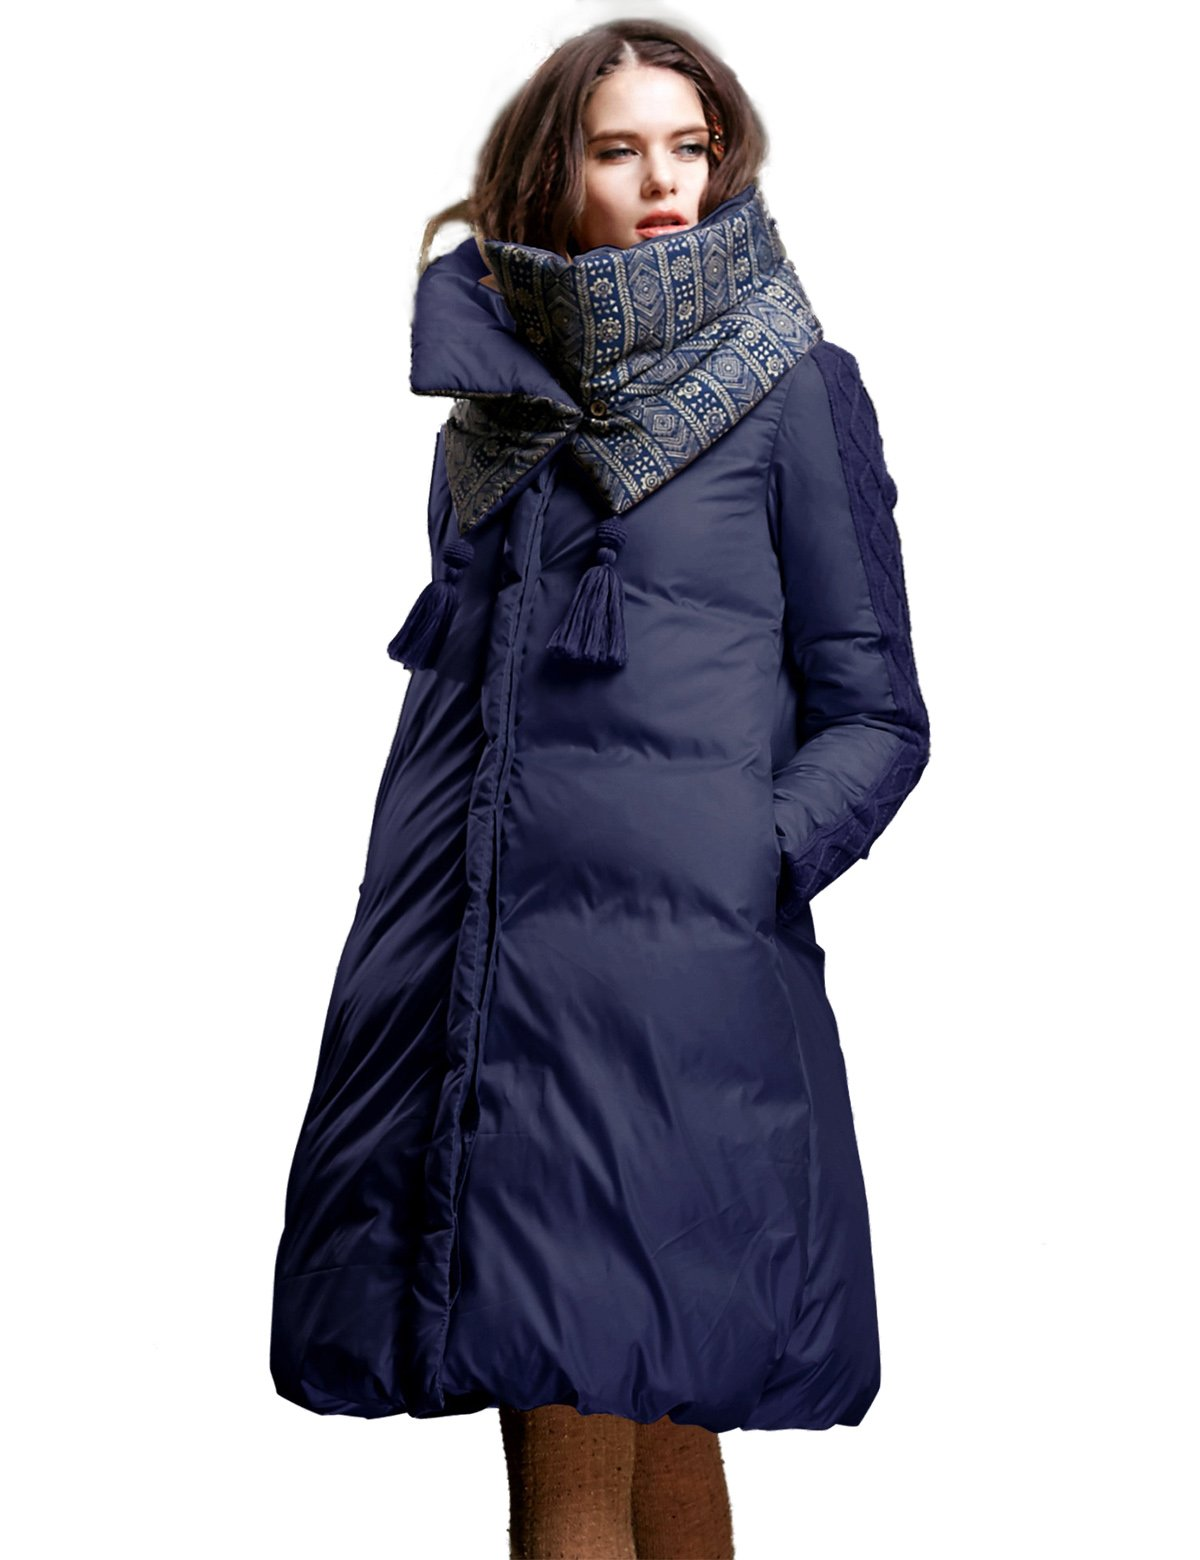 Artka Women's Vintage Indian Style Down Coat with Removable Scarf Winter Jacket Lightweight Outwear